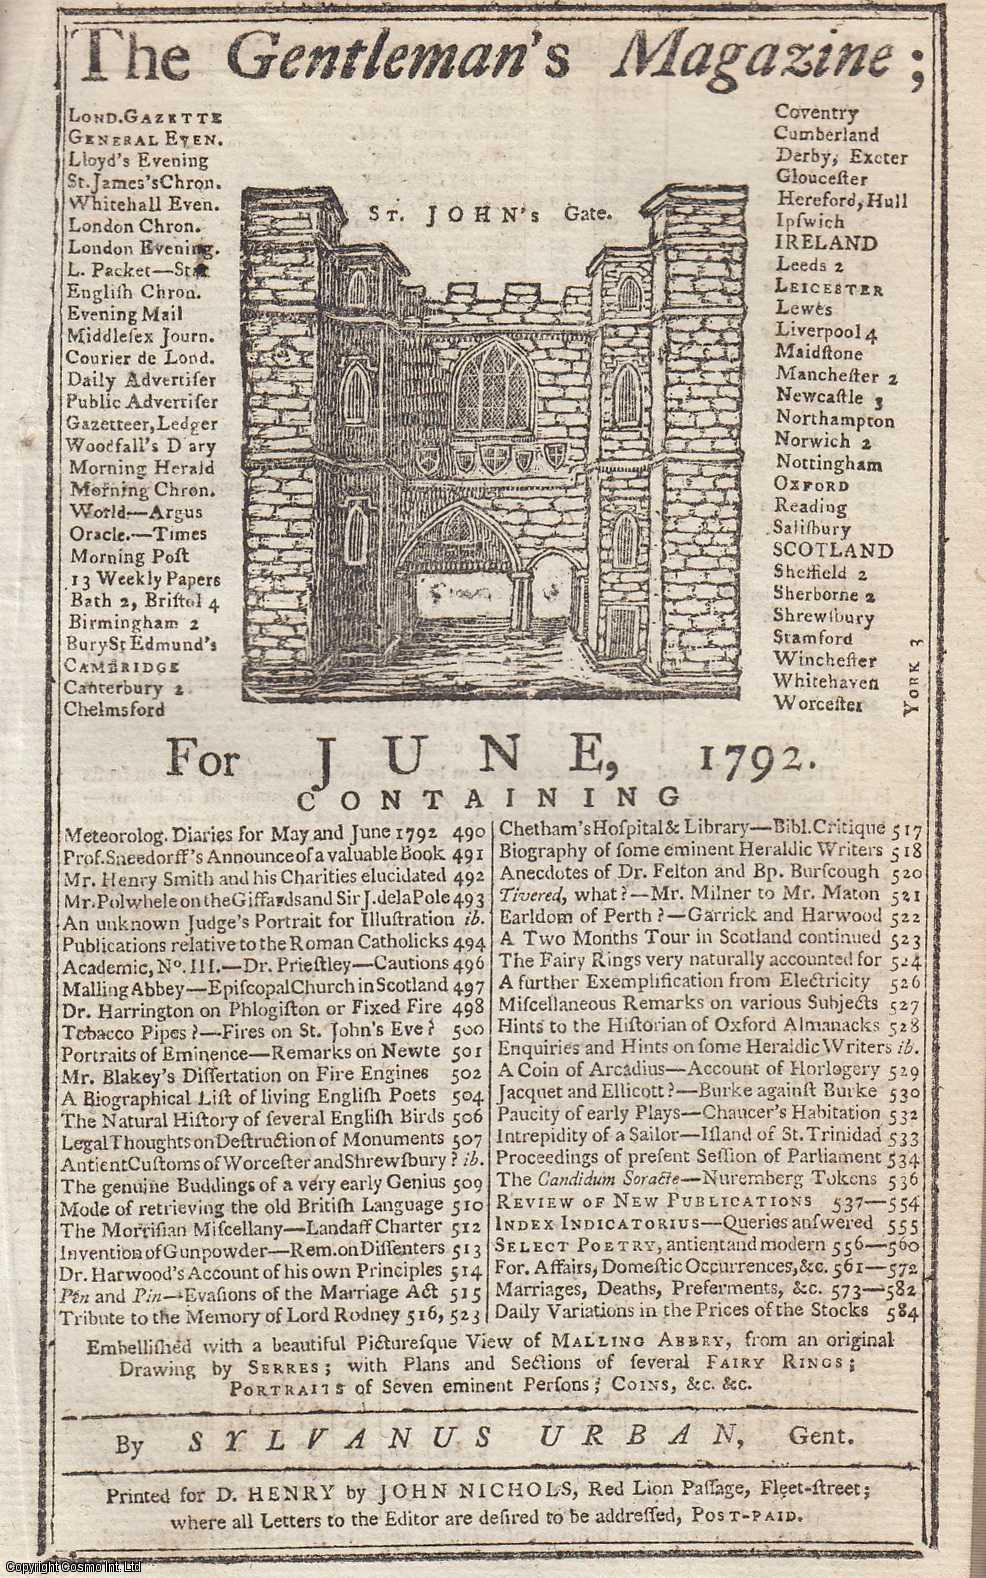 The Gentleman's Magazine for June 1792.  FEATURING Three Plates; Malling Abbey, Portraits of Seven Eminent Persons & Plans of Several Fairy Rings., Urban, Sylvanus.